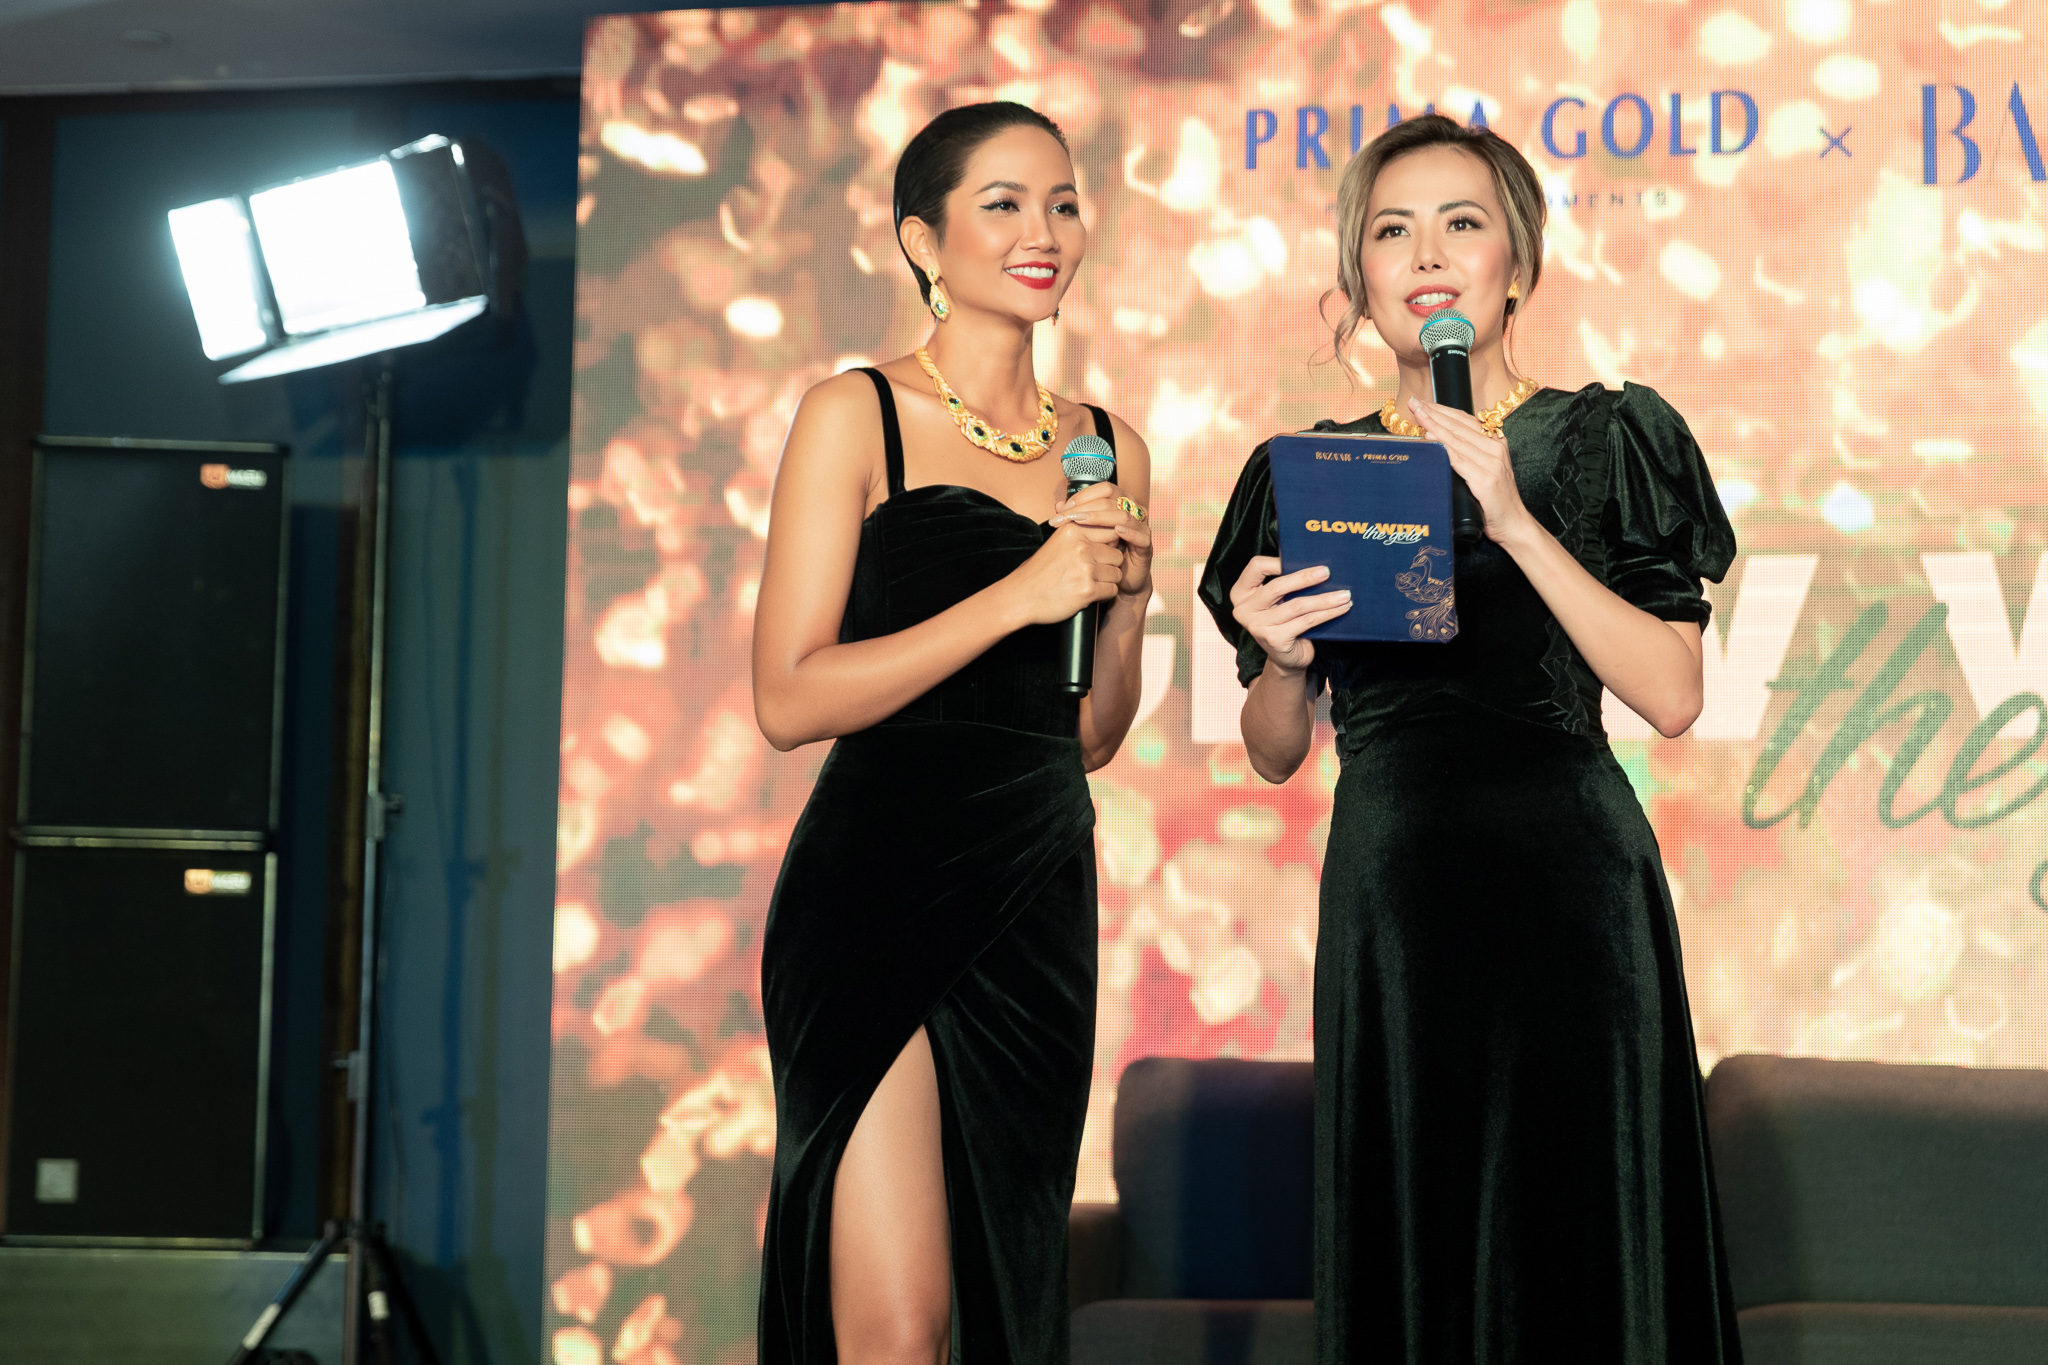 Đêm tiệc Glow with the Gold do Prima Gold tổ chức 7